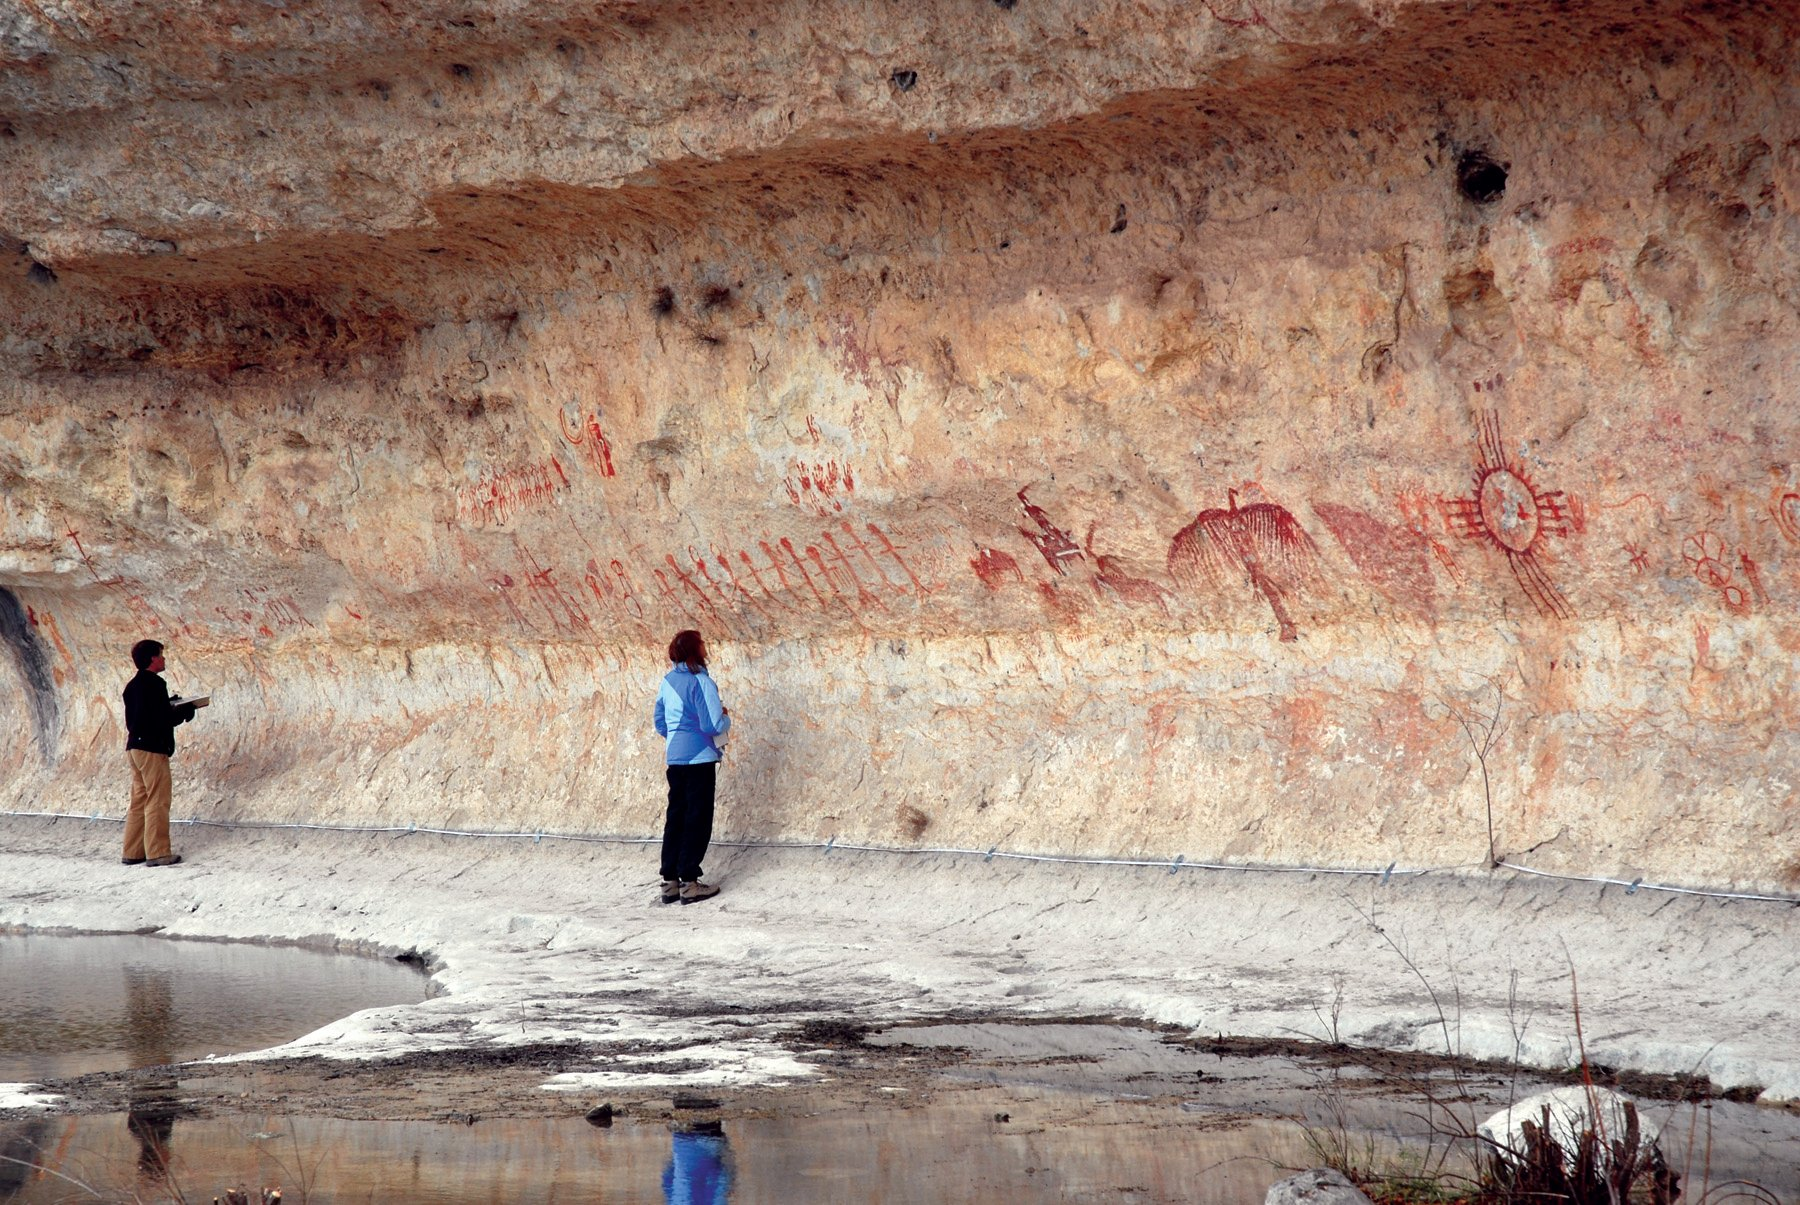 Scientists believe that rock art sites were chosen for their visual and acoustic properties.